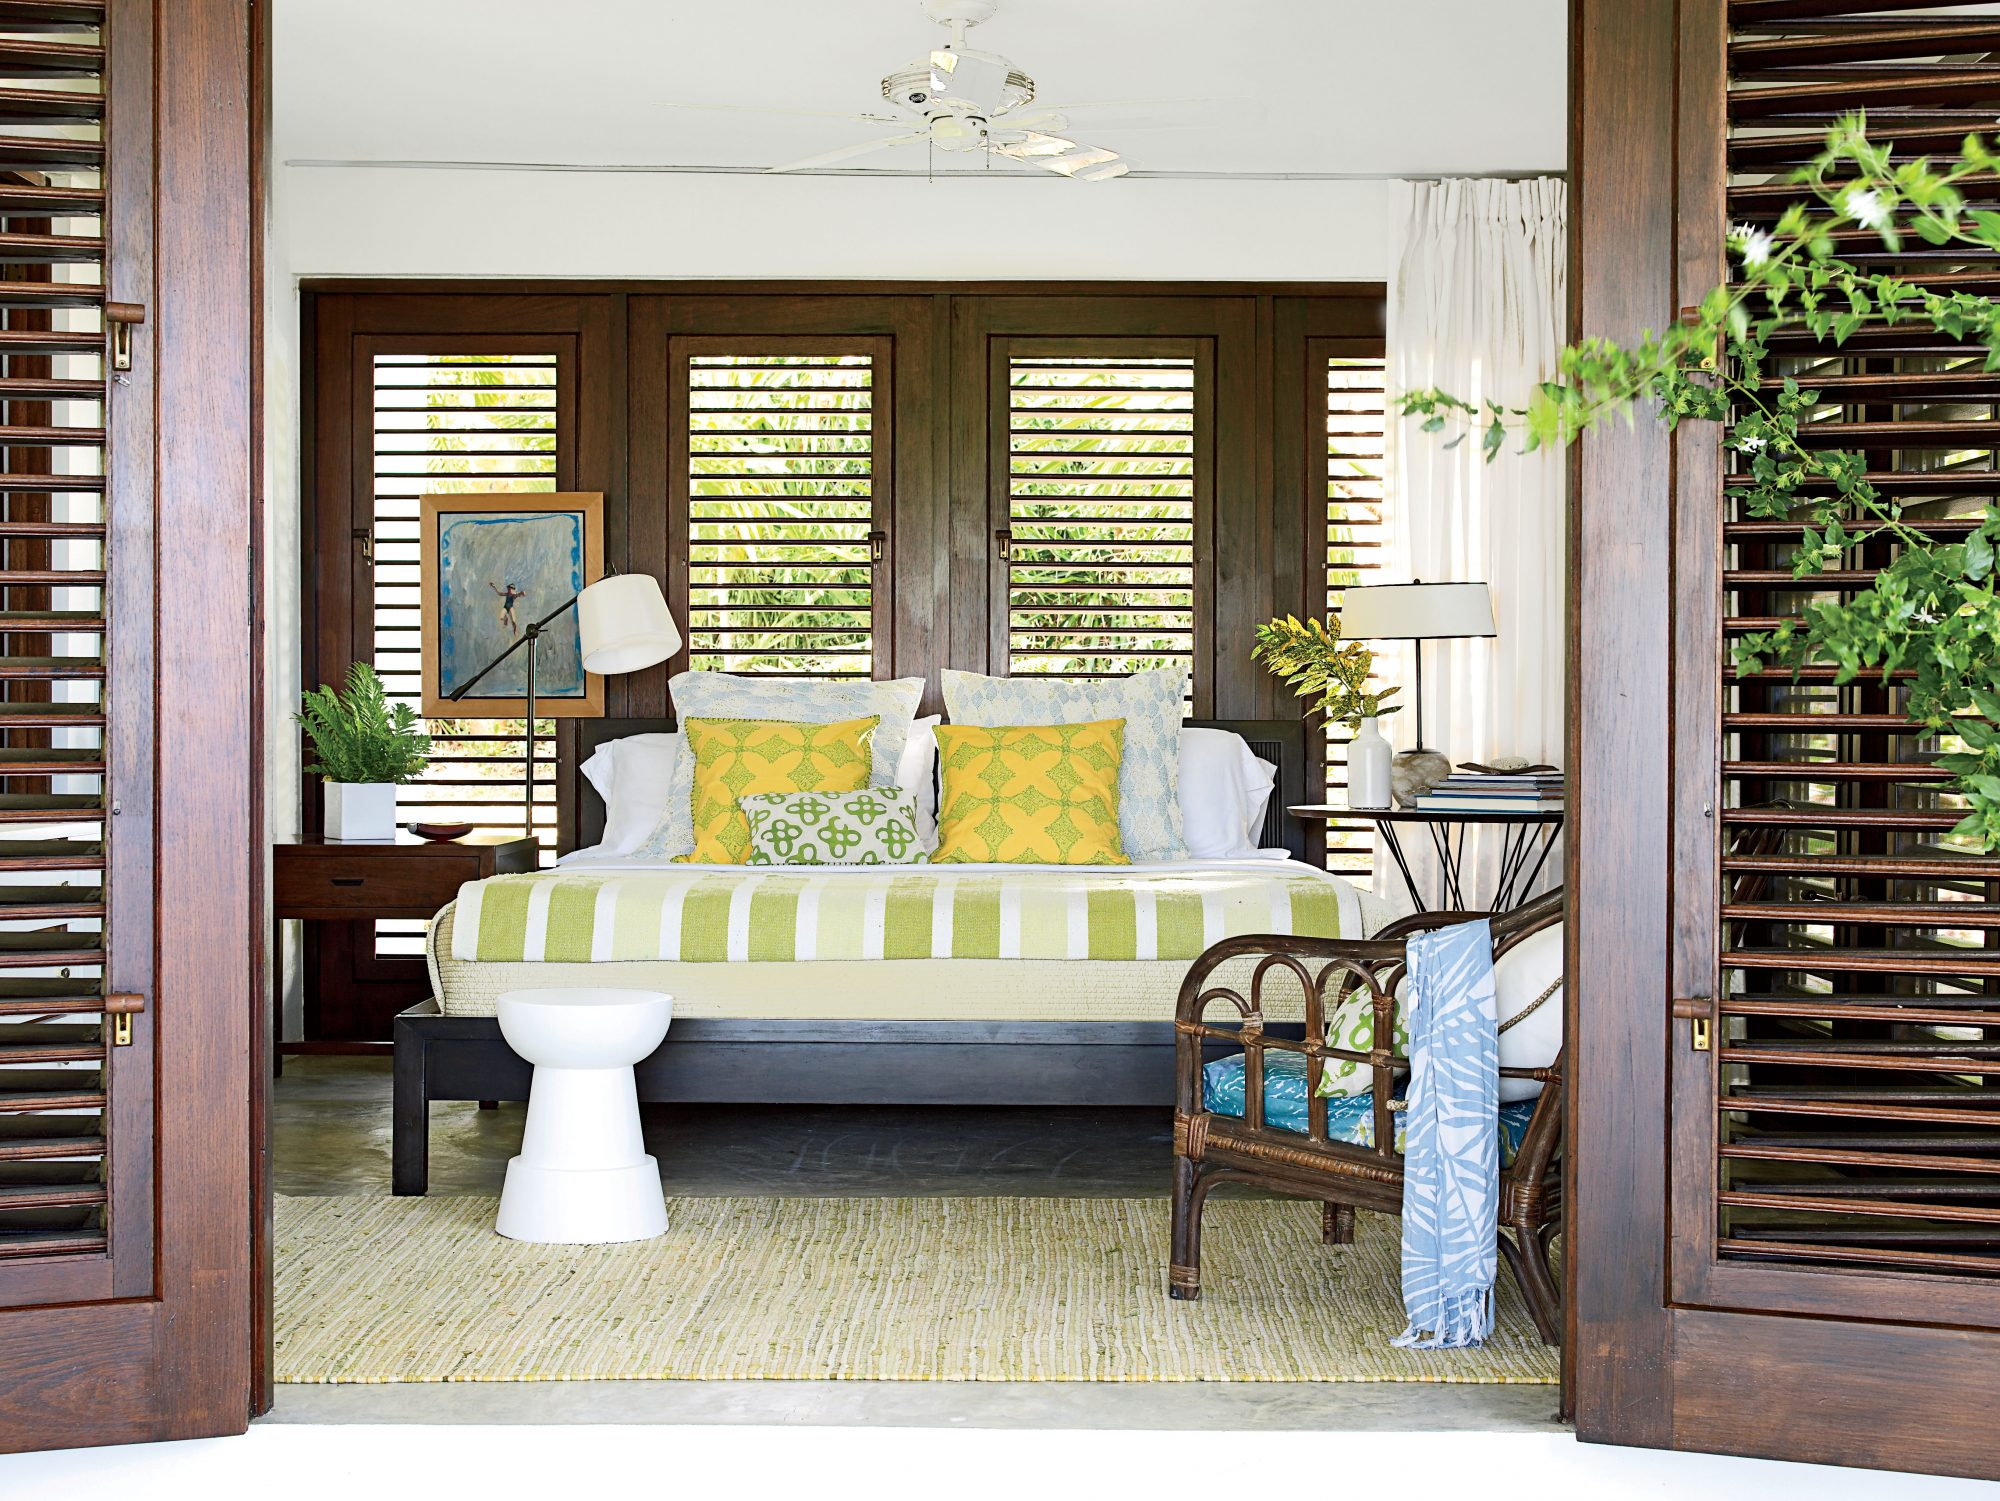 The fresh green and yellow linens in this guest bedroom on Vieques Island, Puerto Rico, along with the mahogany doors and windows, echo the lush landscape outside. Adding a small potted plant to the bedside table literally brings the outside in.